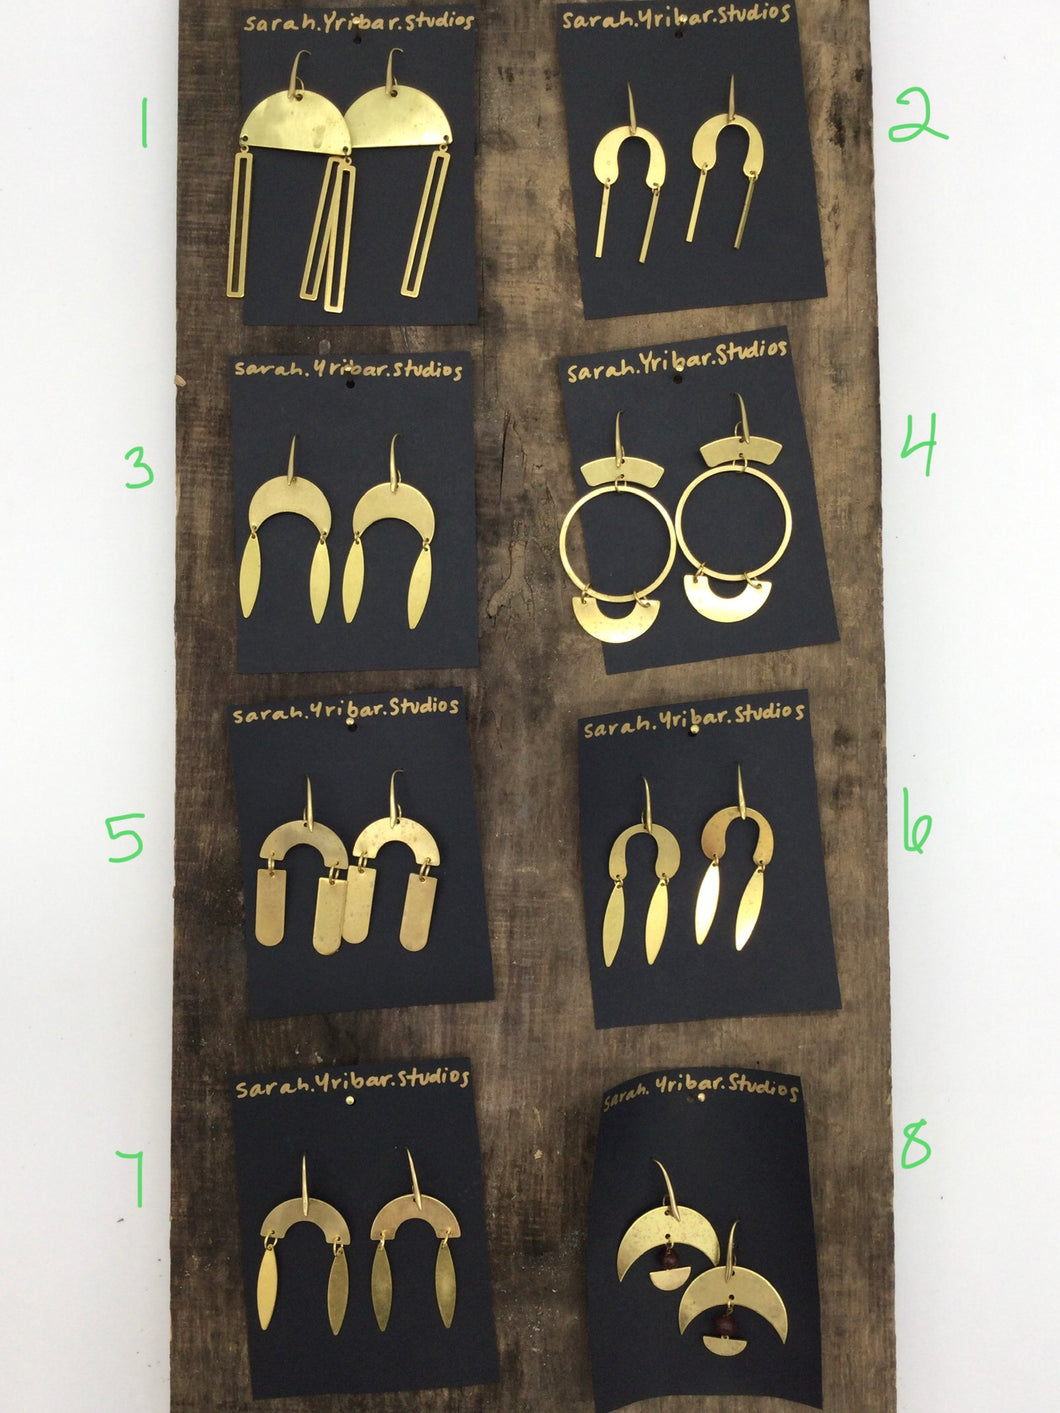 Sarah Yribar Studio earrings